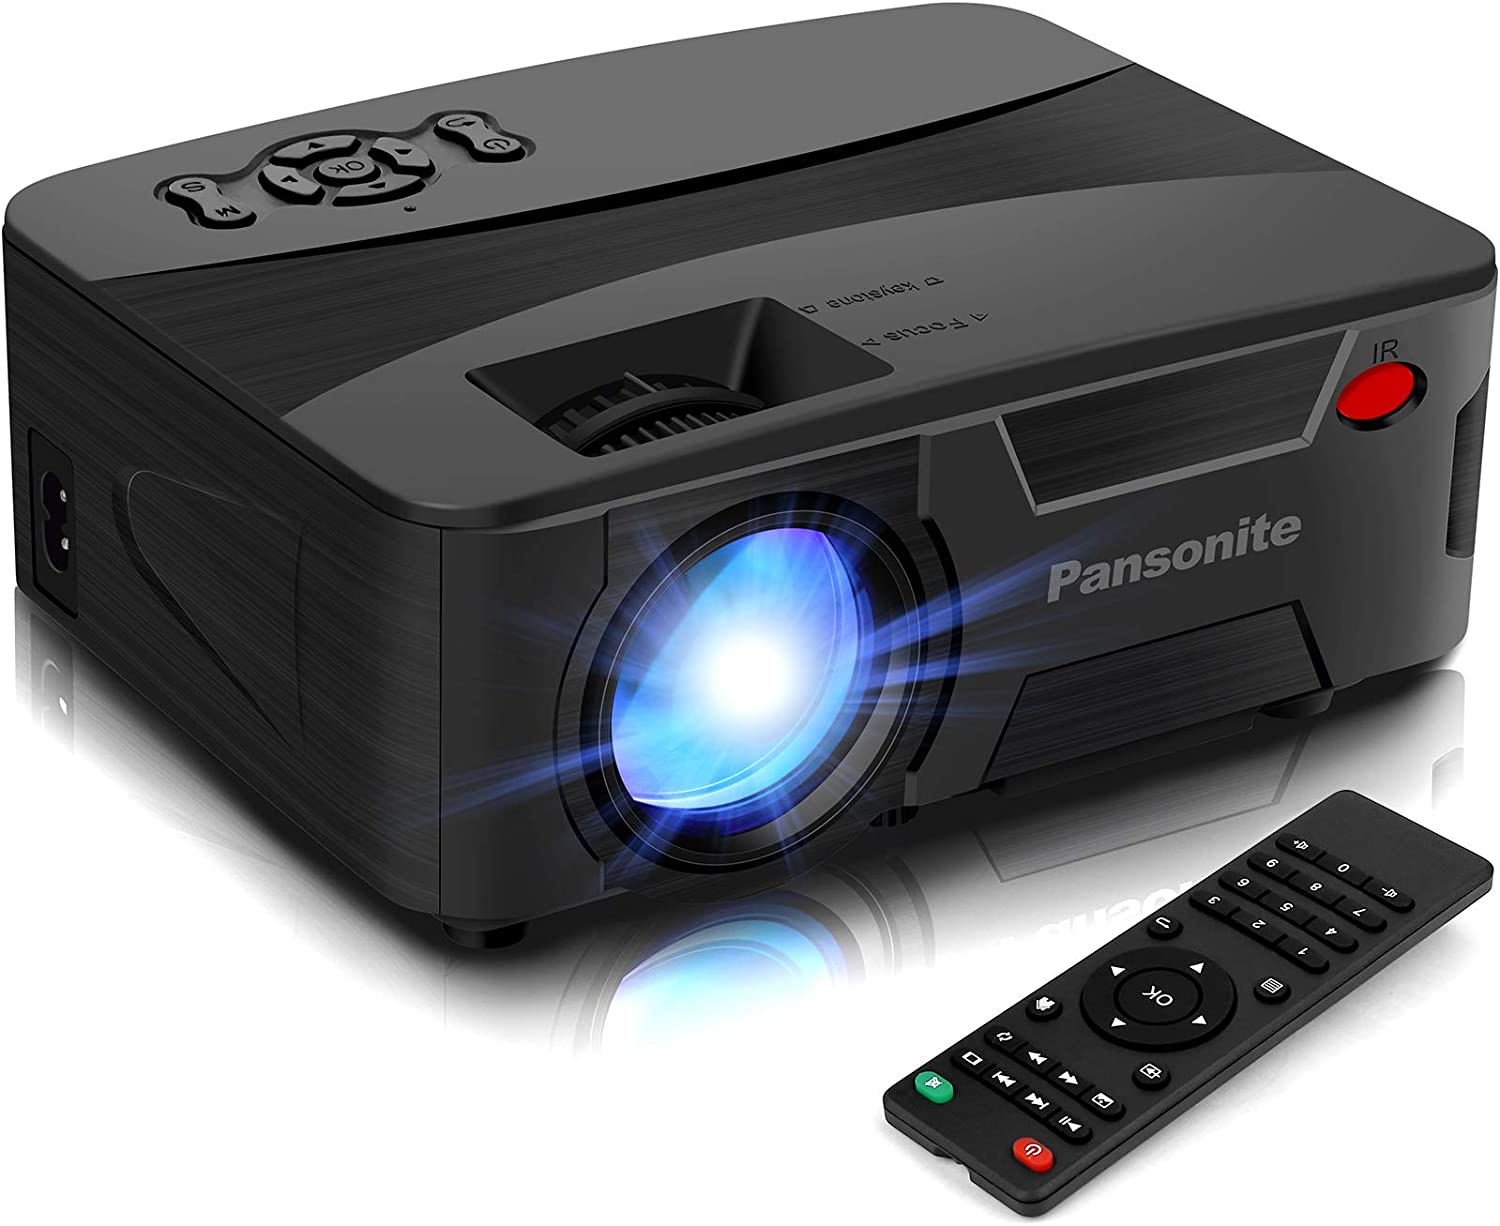 Pansonite Mini Projector Portable Projector for Outdoor Movies and Home Theater Support 1080P and Max.200'' Display Compatible with TV Stick,PS4,iPhone,Smartphone,HDMI and USB(Latest Upgrade)